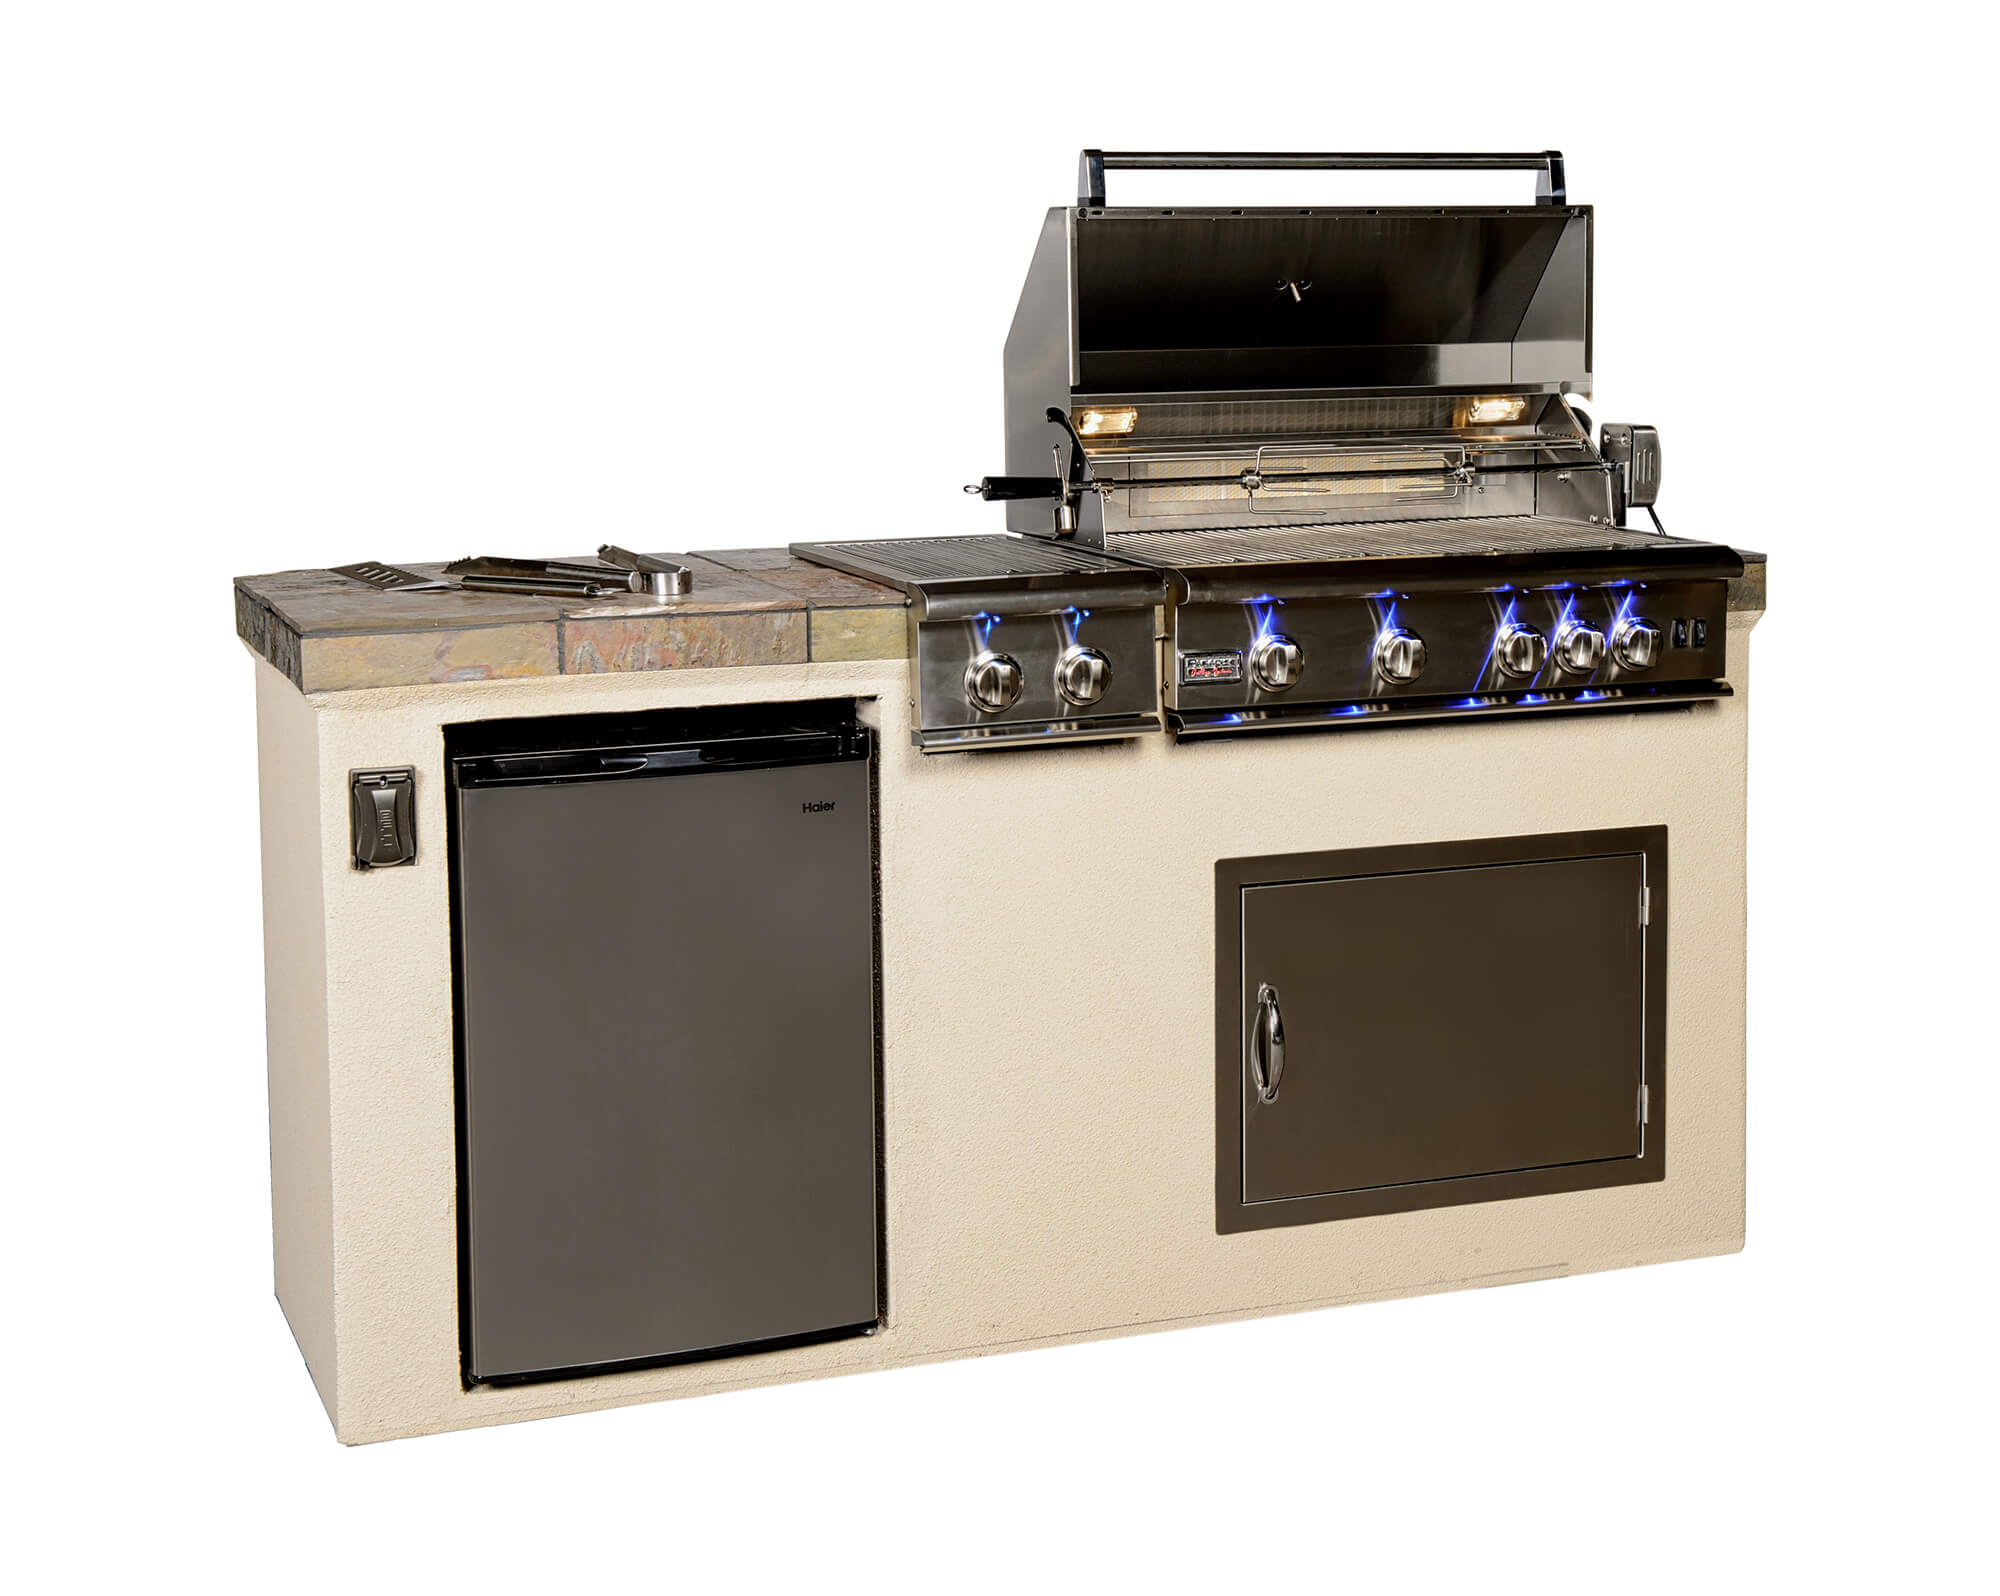 Paradise Grills Direct Outdoor Kitchens - Houston Texas Showroom